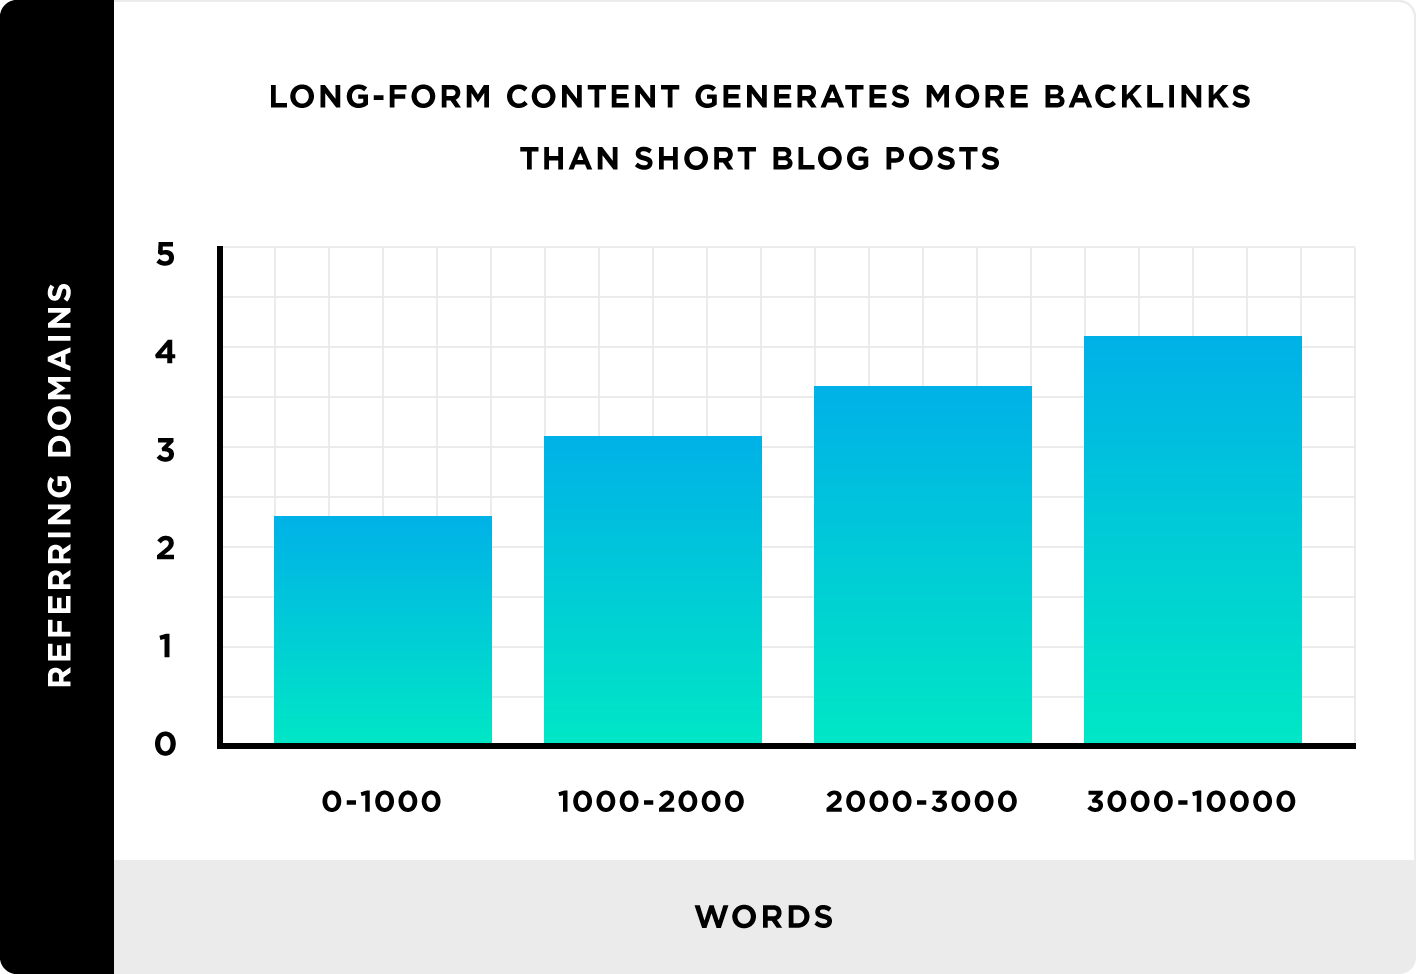 Correlation between number of words and backlinks